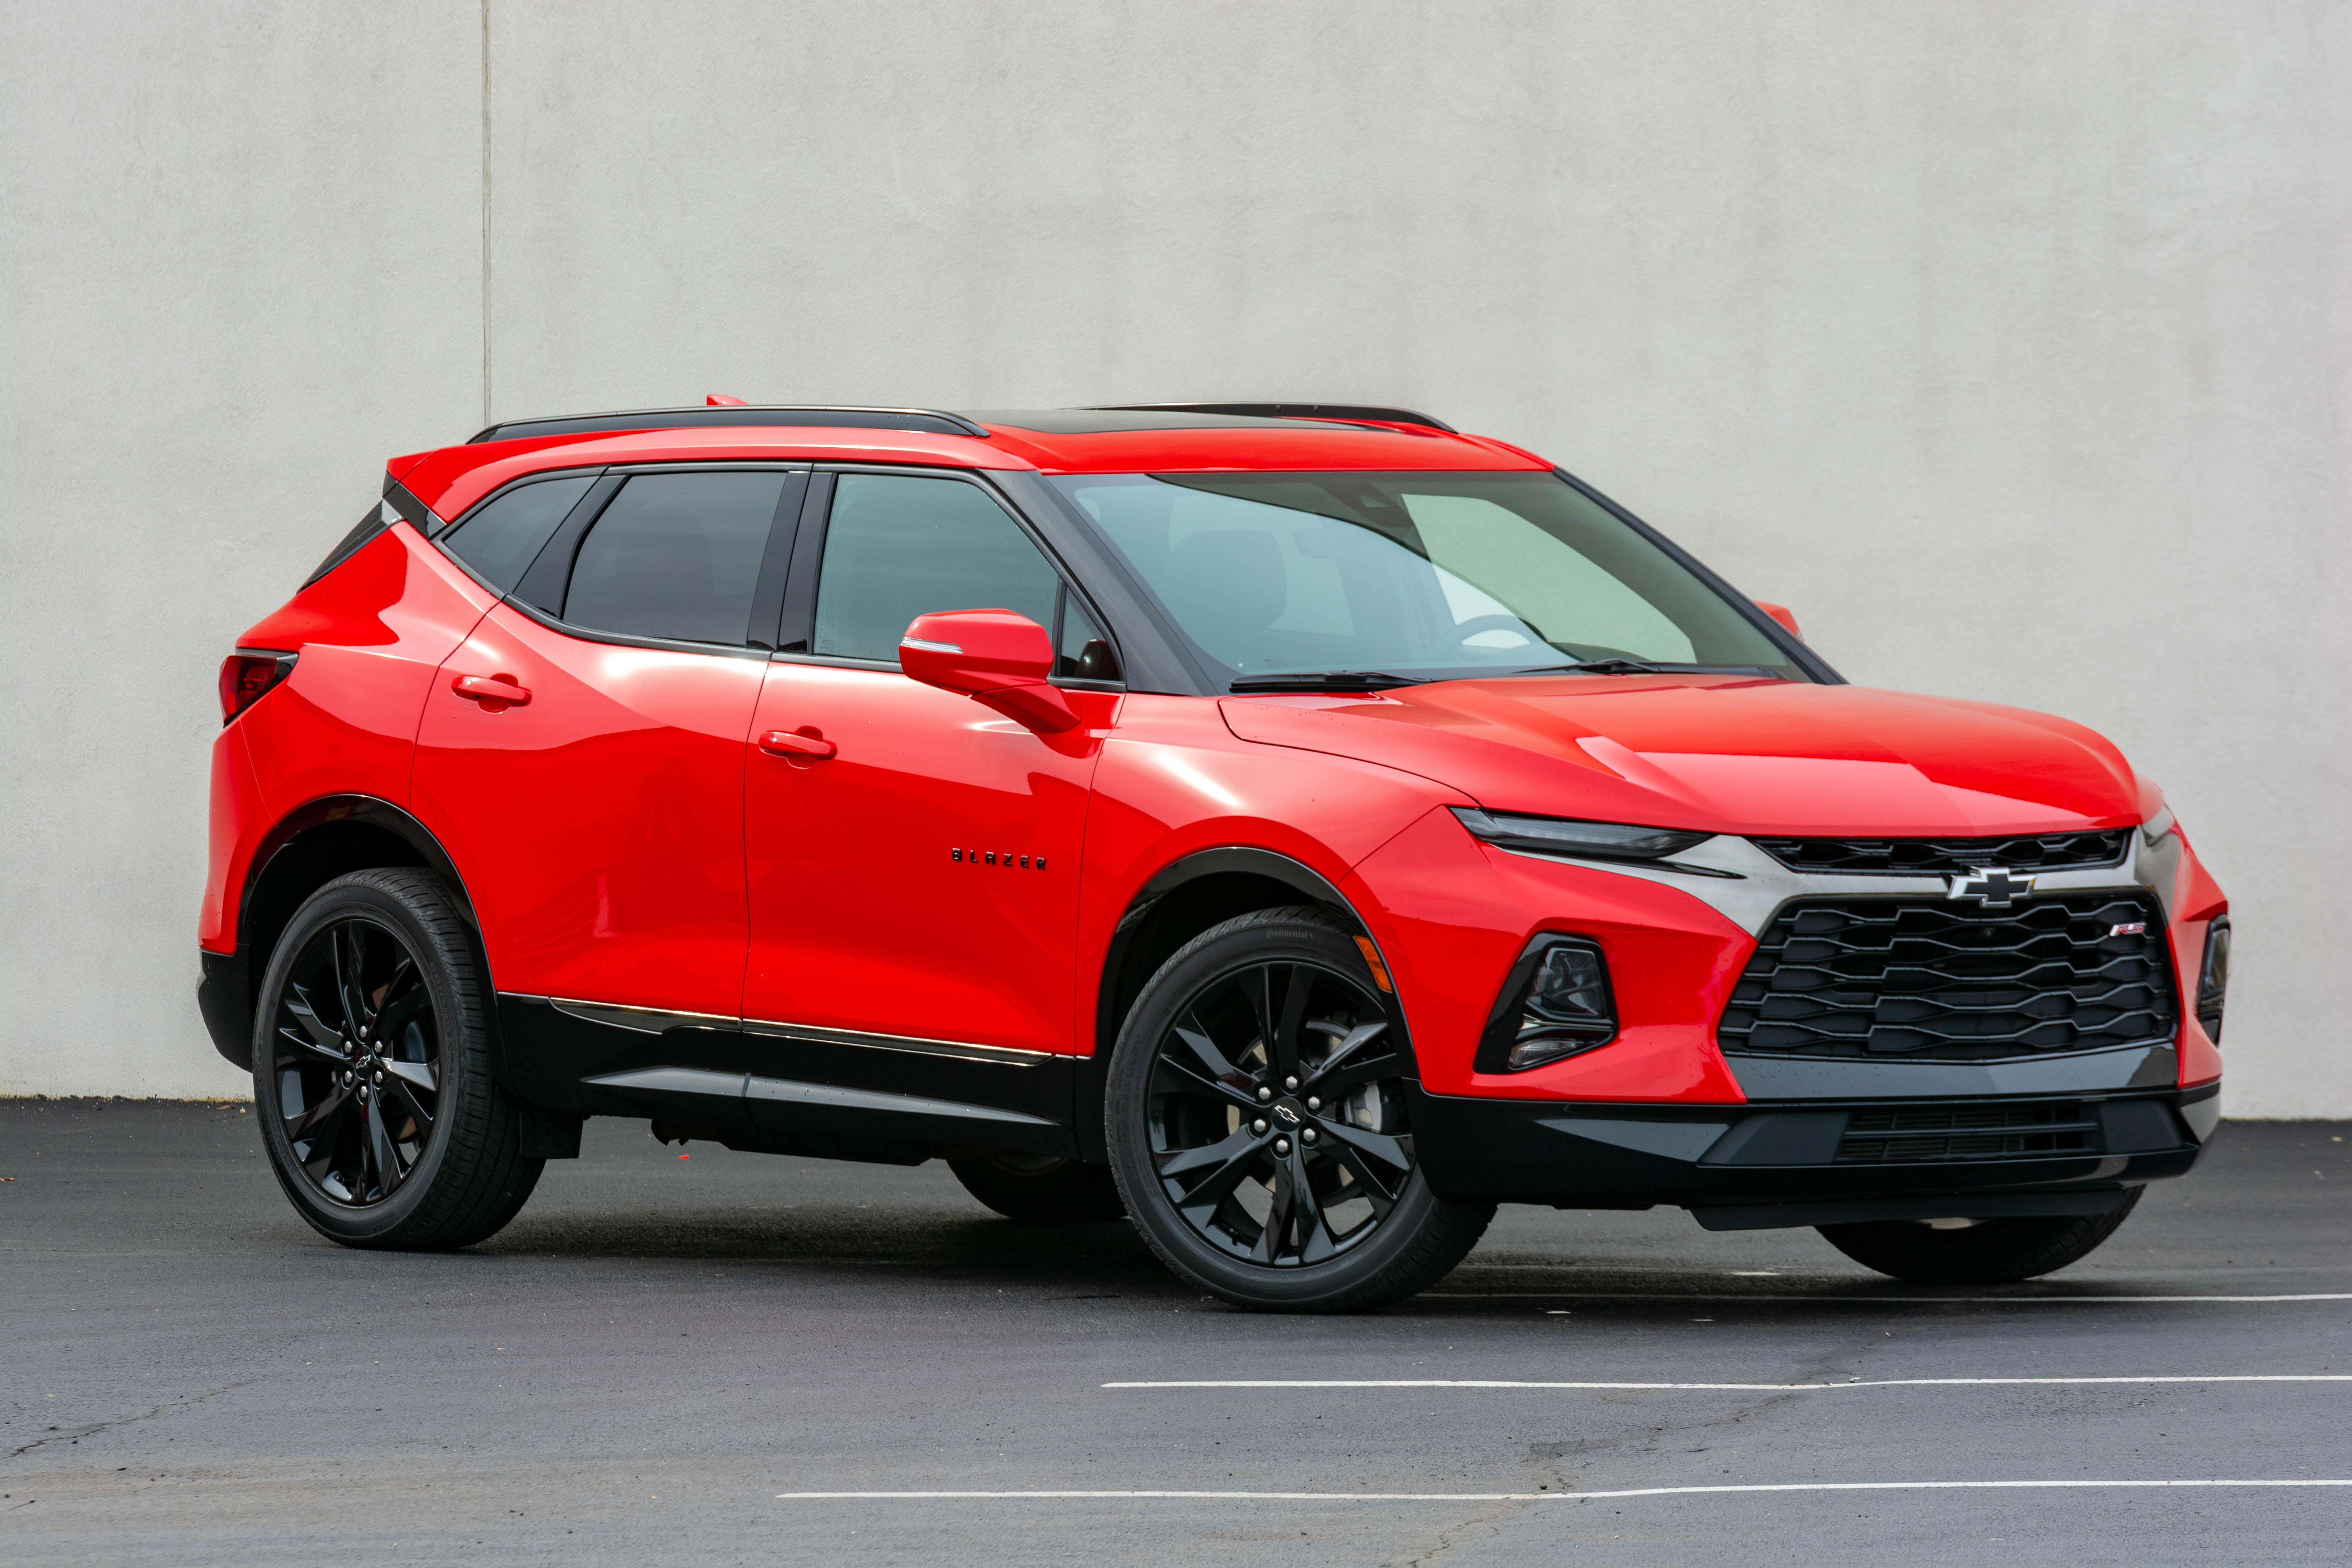 2019 Chevrolet Blazer Rs Awd Review Everybody S Talkin The Truth About Cars